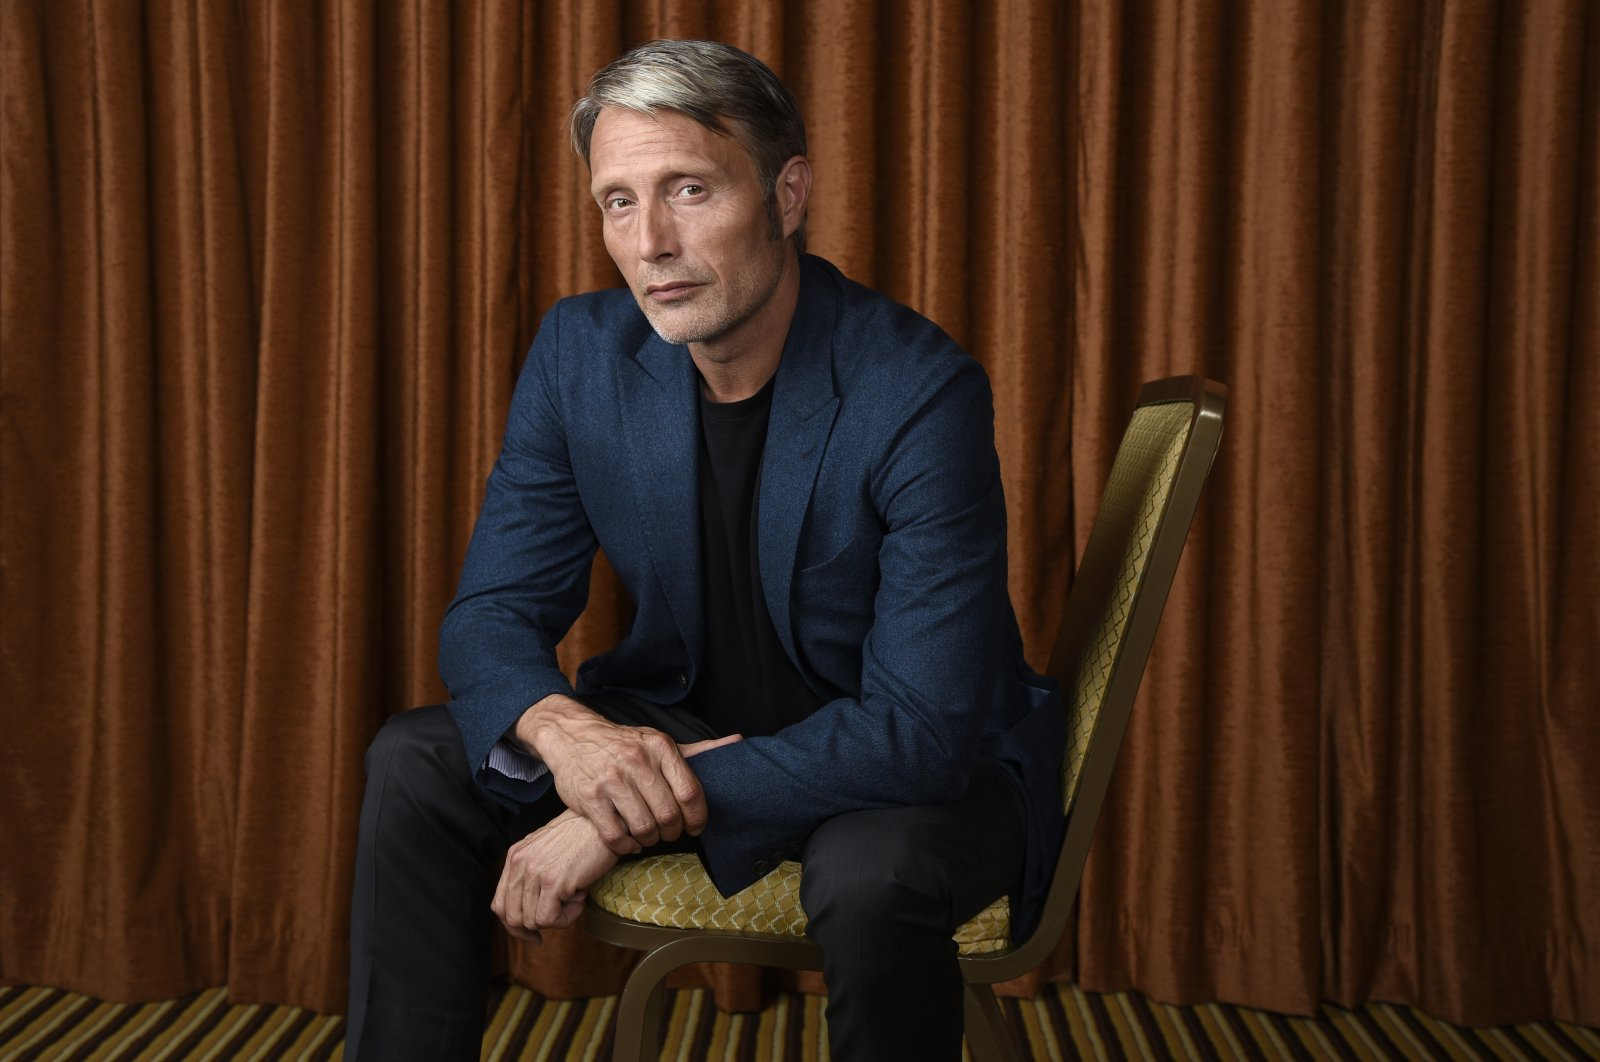 Danish actor Mads Mikkelsen to replace Johnny Depp in 'Fantastic Beasts 3' | Daily Sabah